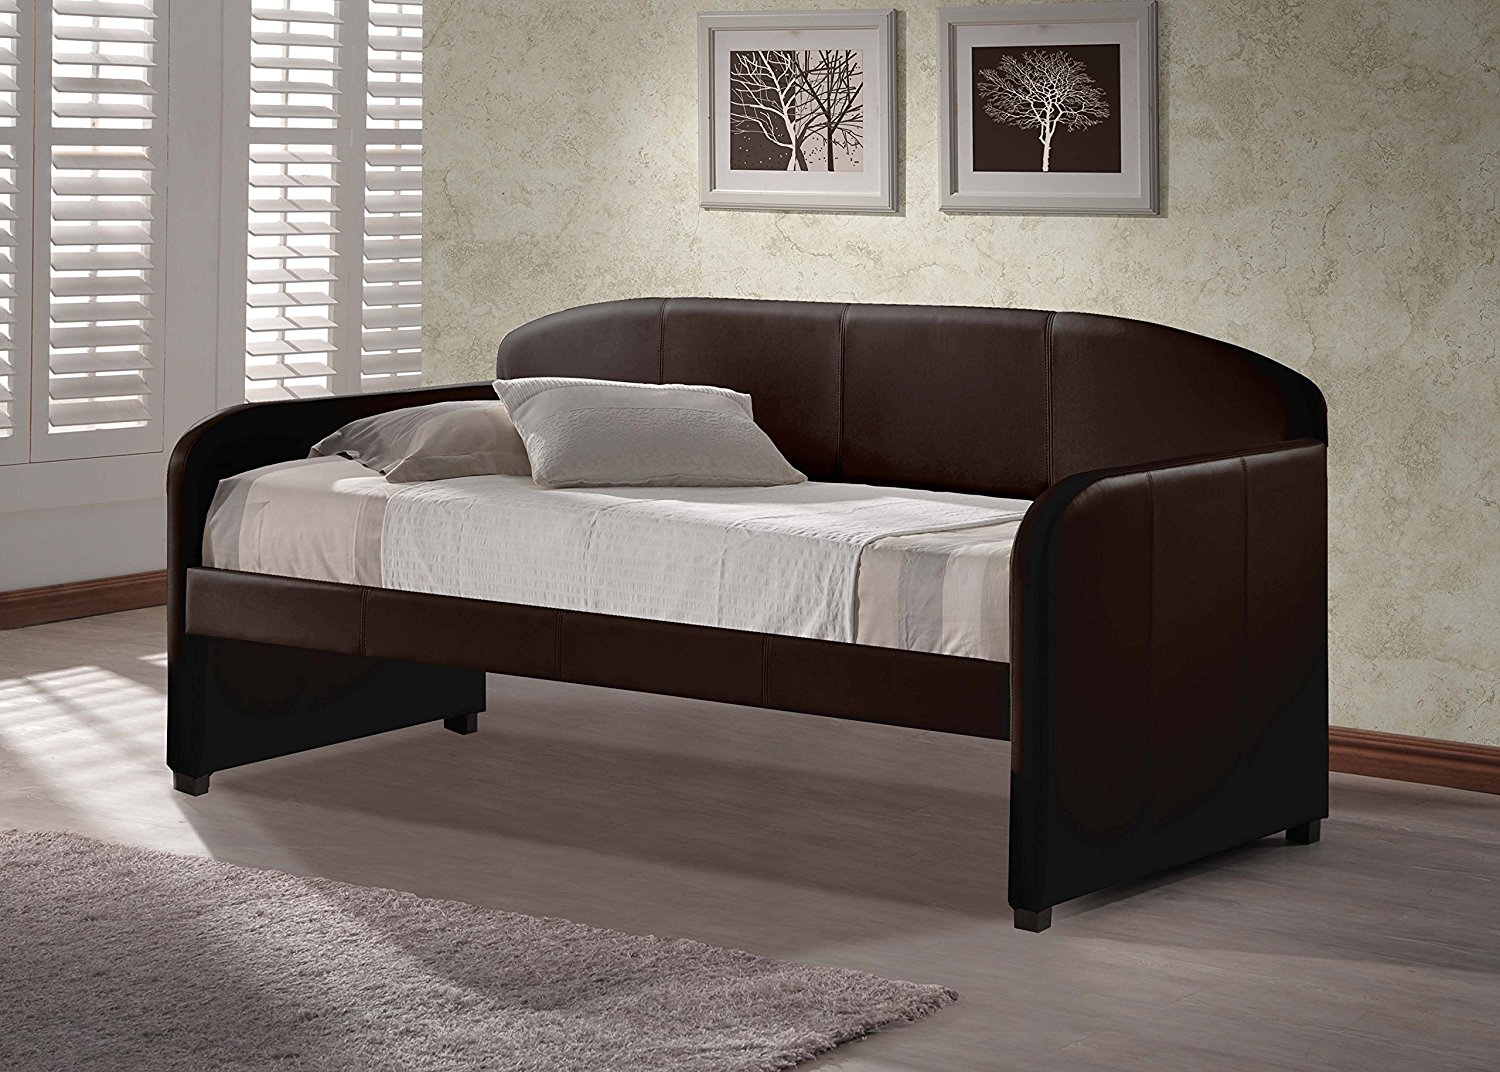 "Hillsdale 1613DB Springfield Daybed, 42.5"" D x 82.5"" L x 37"" H, Brown"